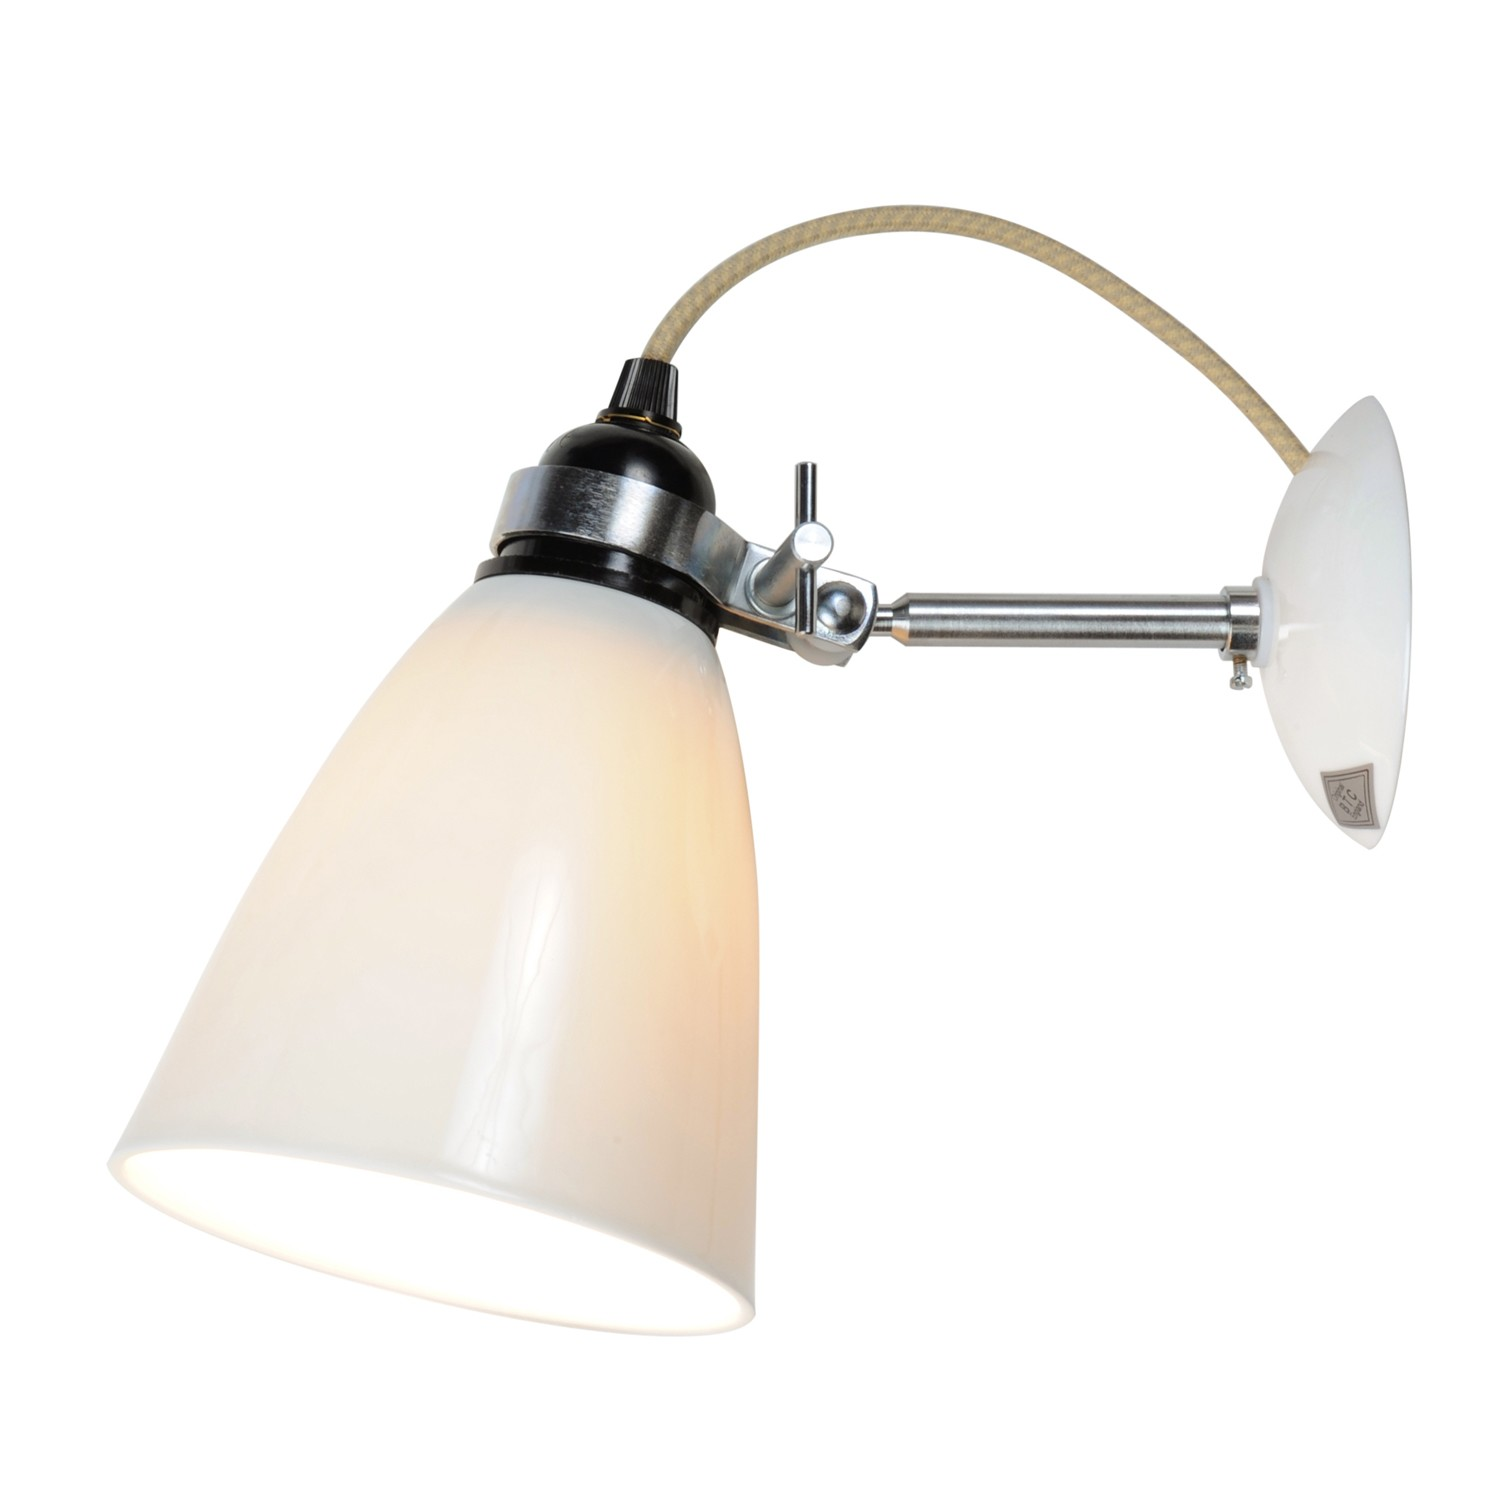 Hector Dome Wall Light Natural White, Medium